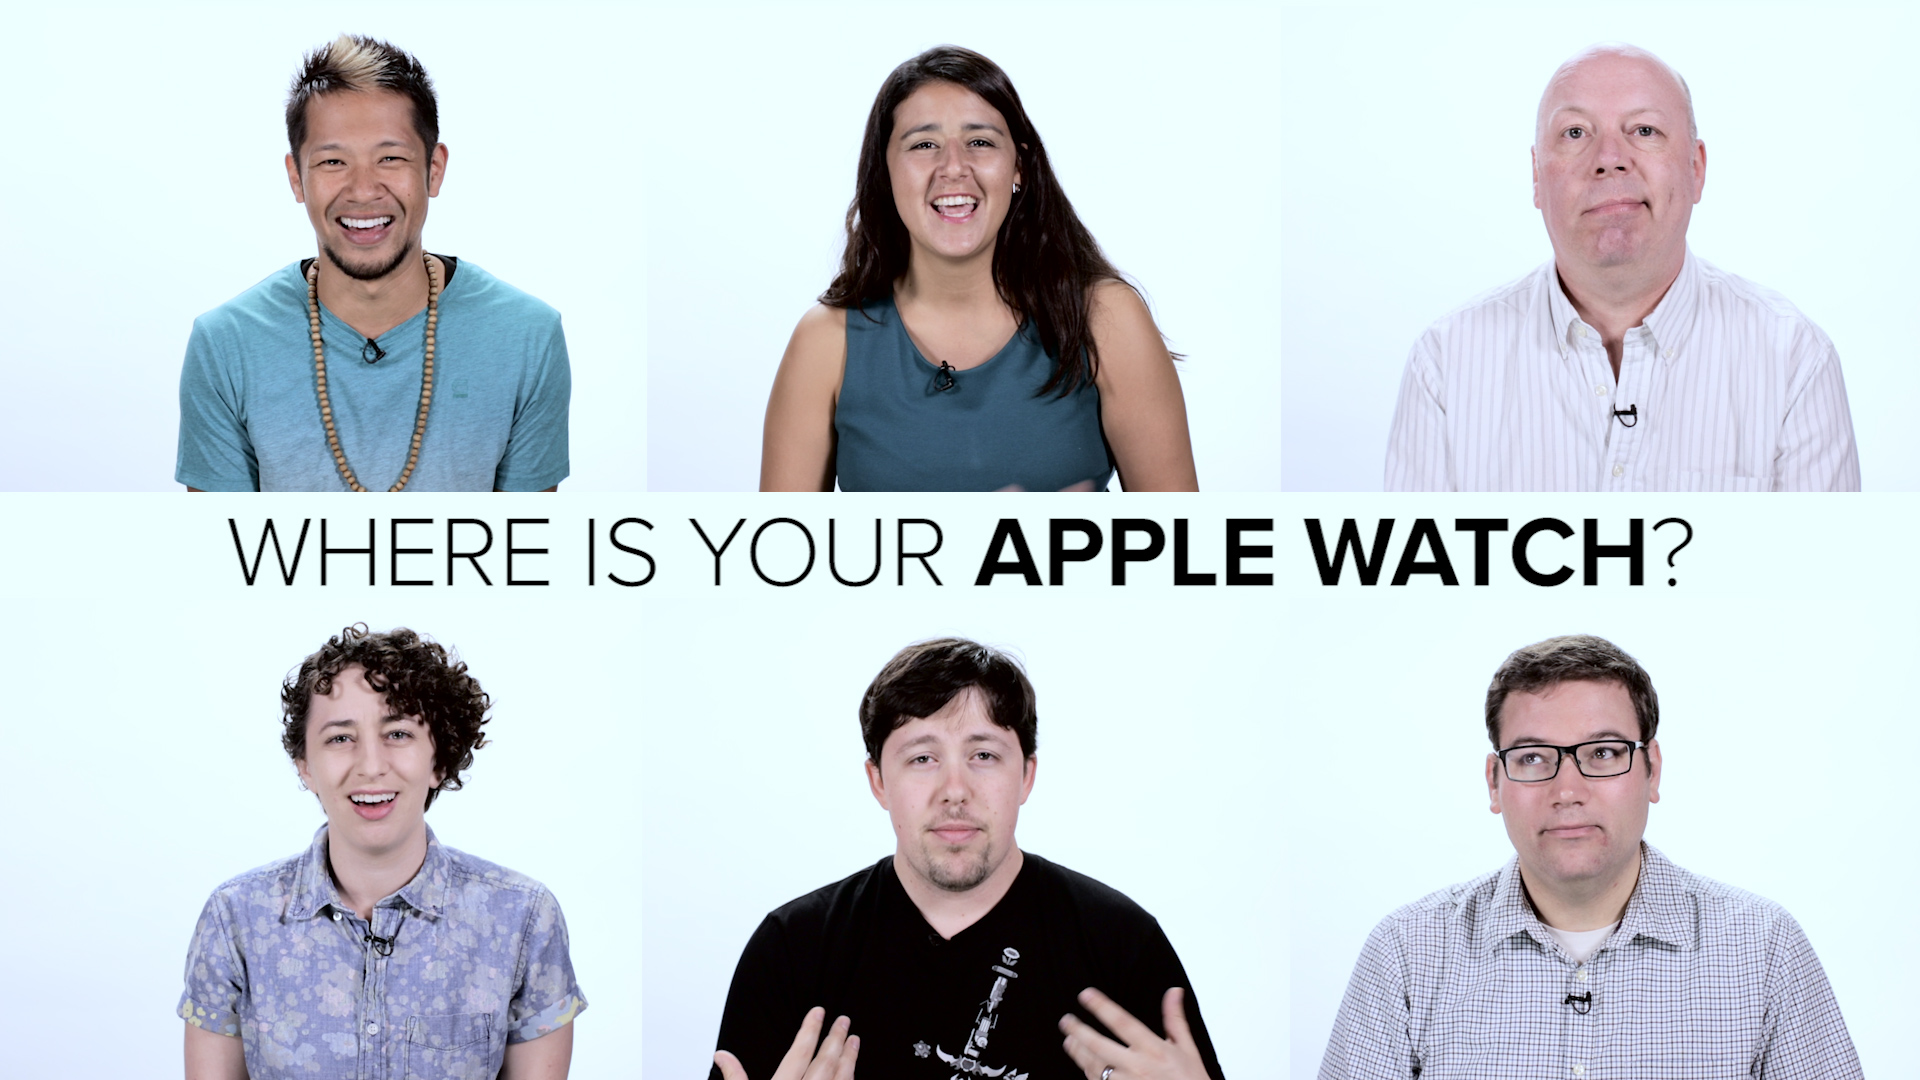 Video: Apple Watch: One year later. Are you still wearing it?